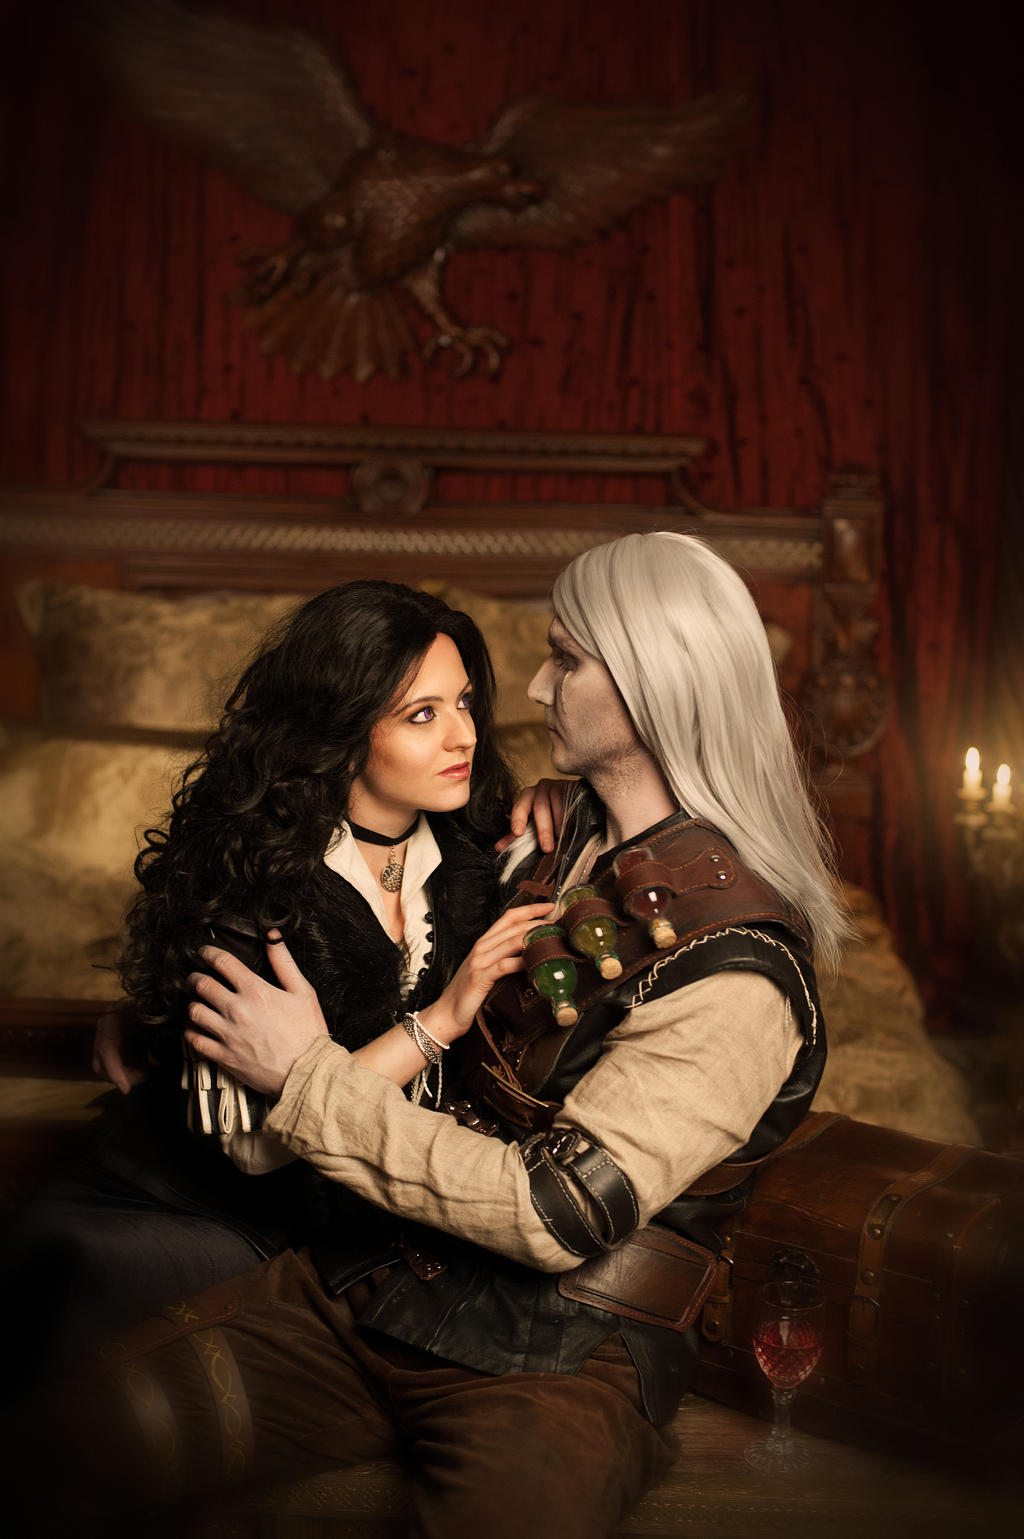 geralt and yennefer by - photo #35